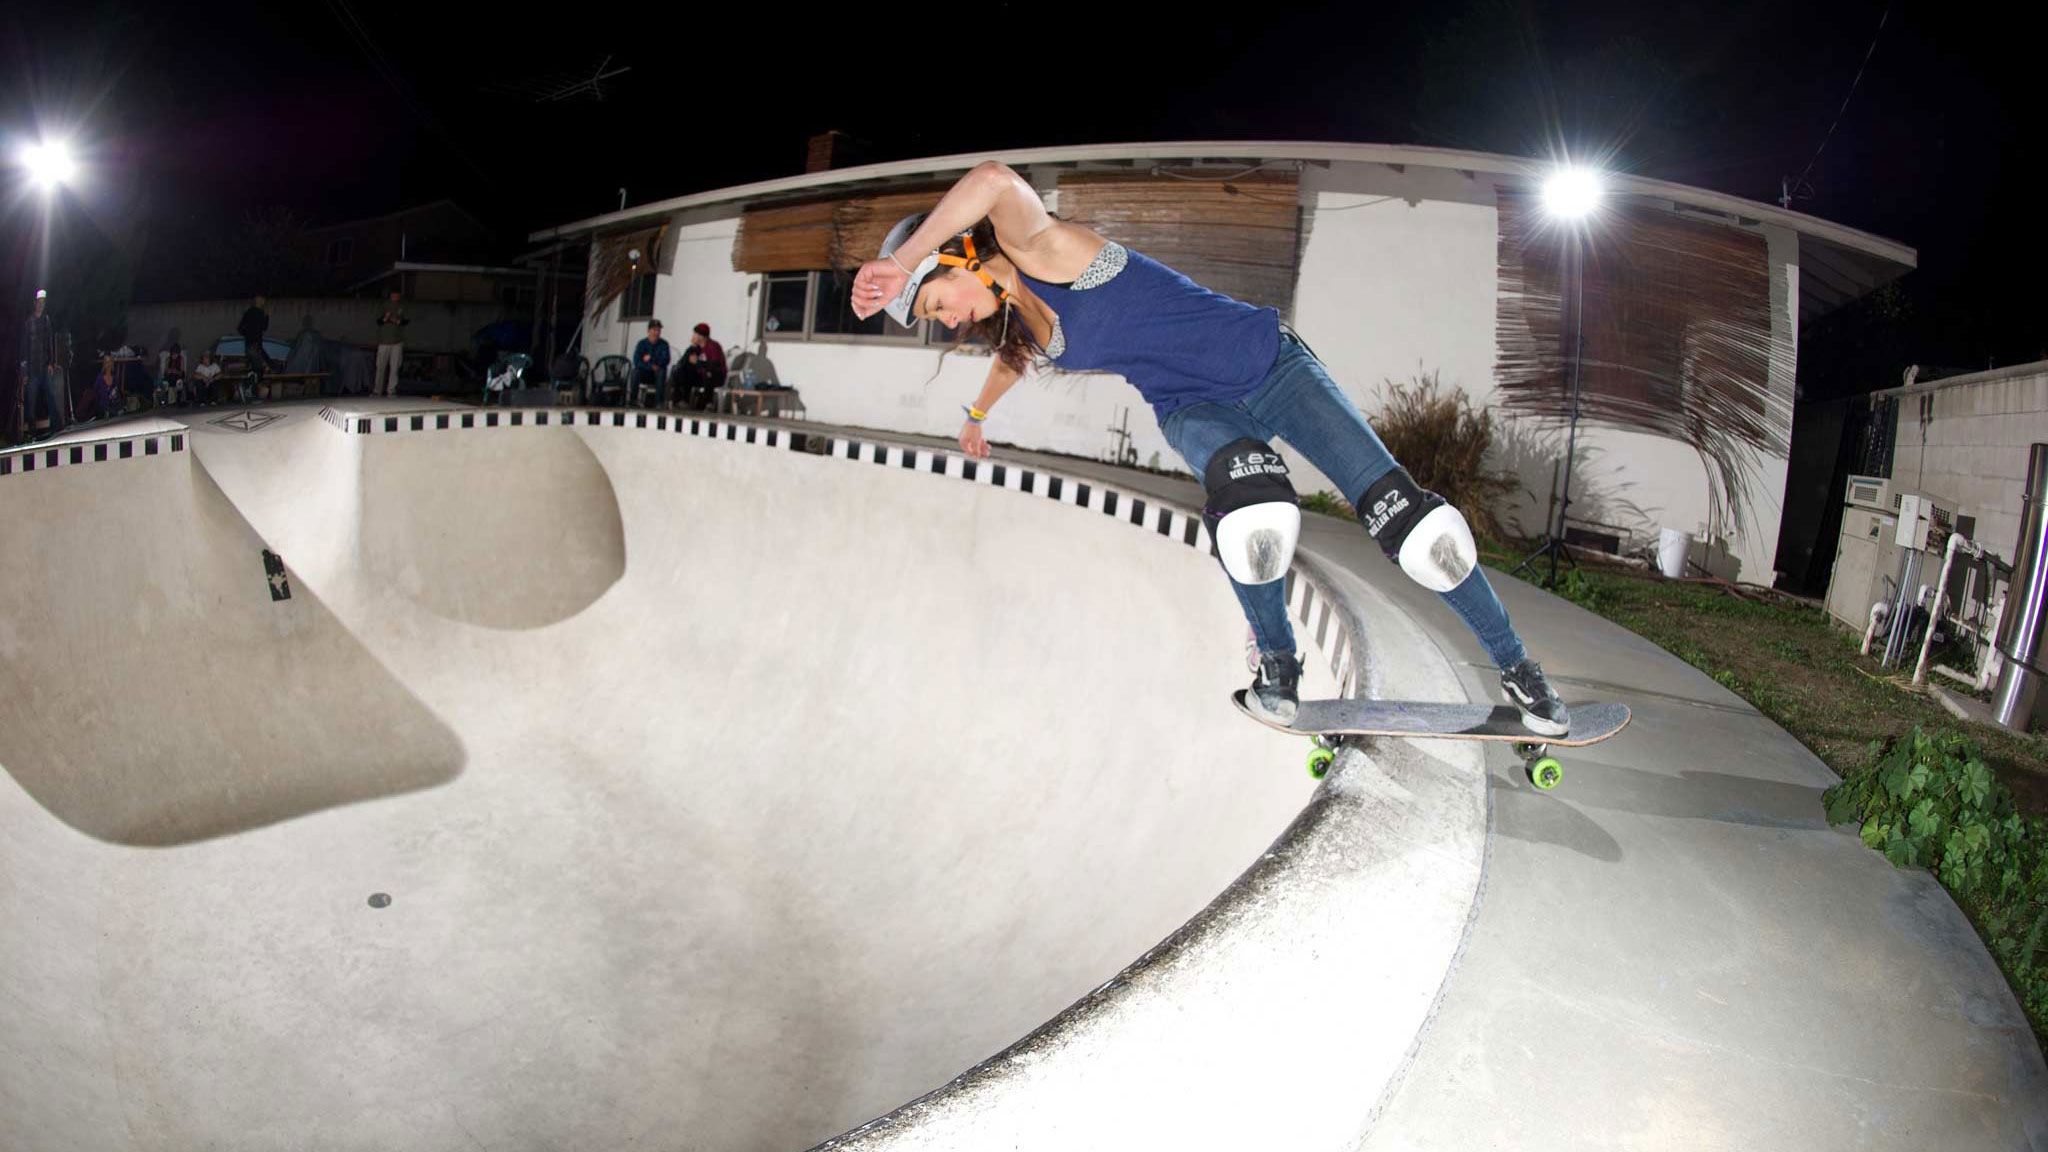 Lizzie Armanto would like to claim the first-ever X Games Women's Skateboard Park gold medal.